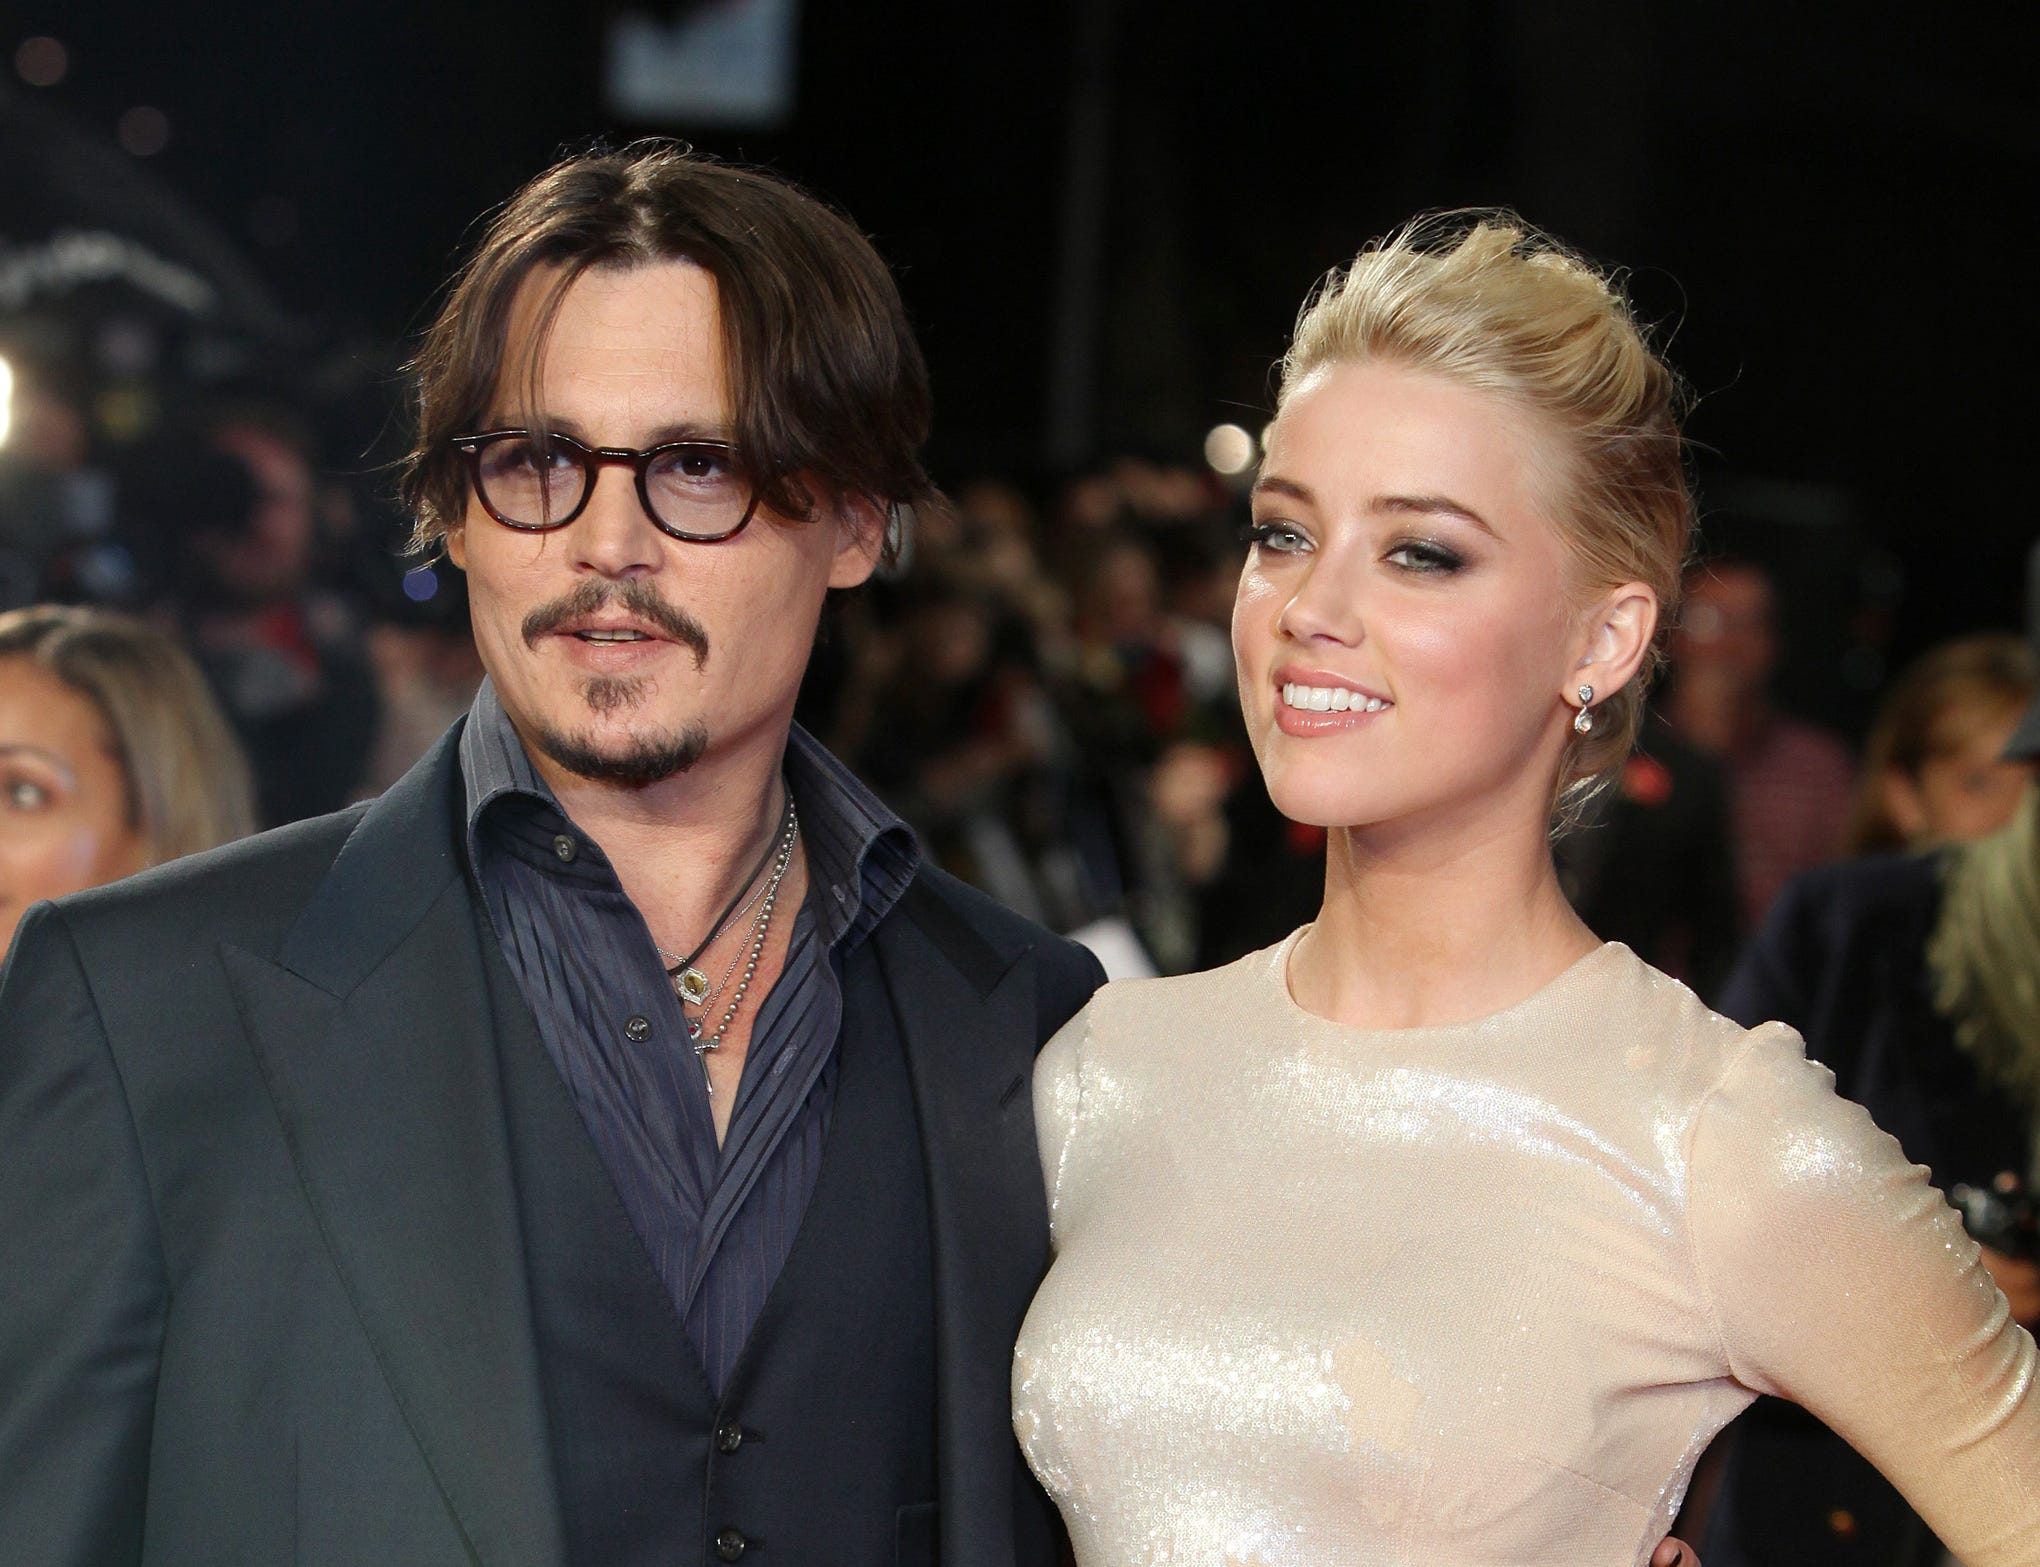 Is Johnny Depp s career kaput? Maybe, but don t underestimate the devotion of his fans